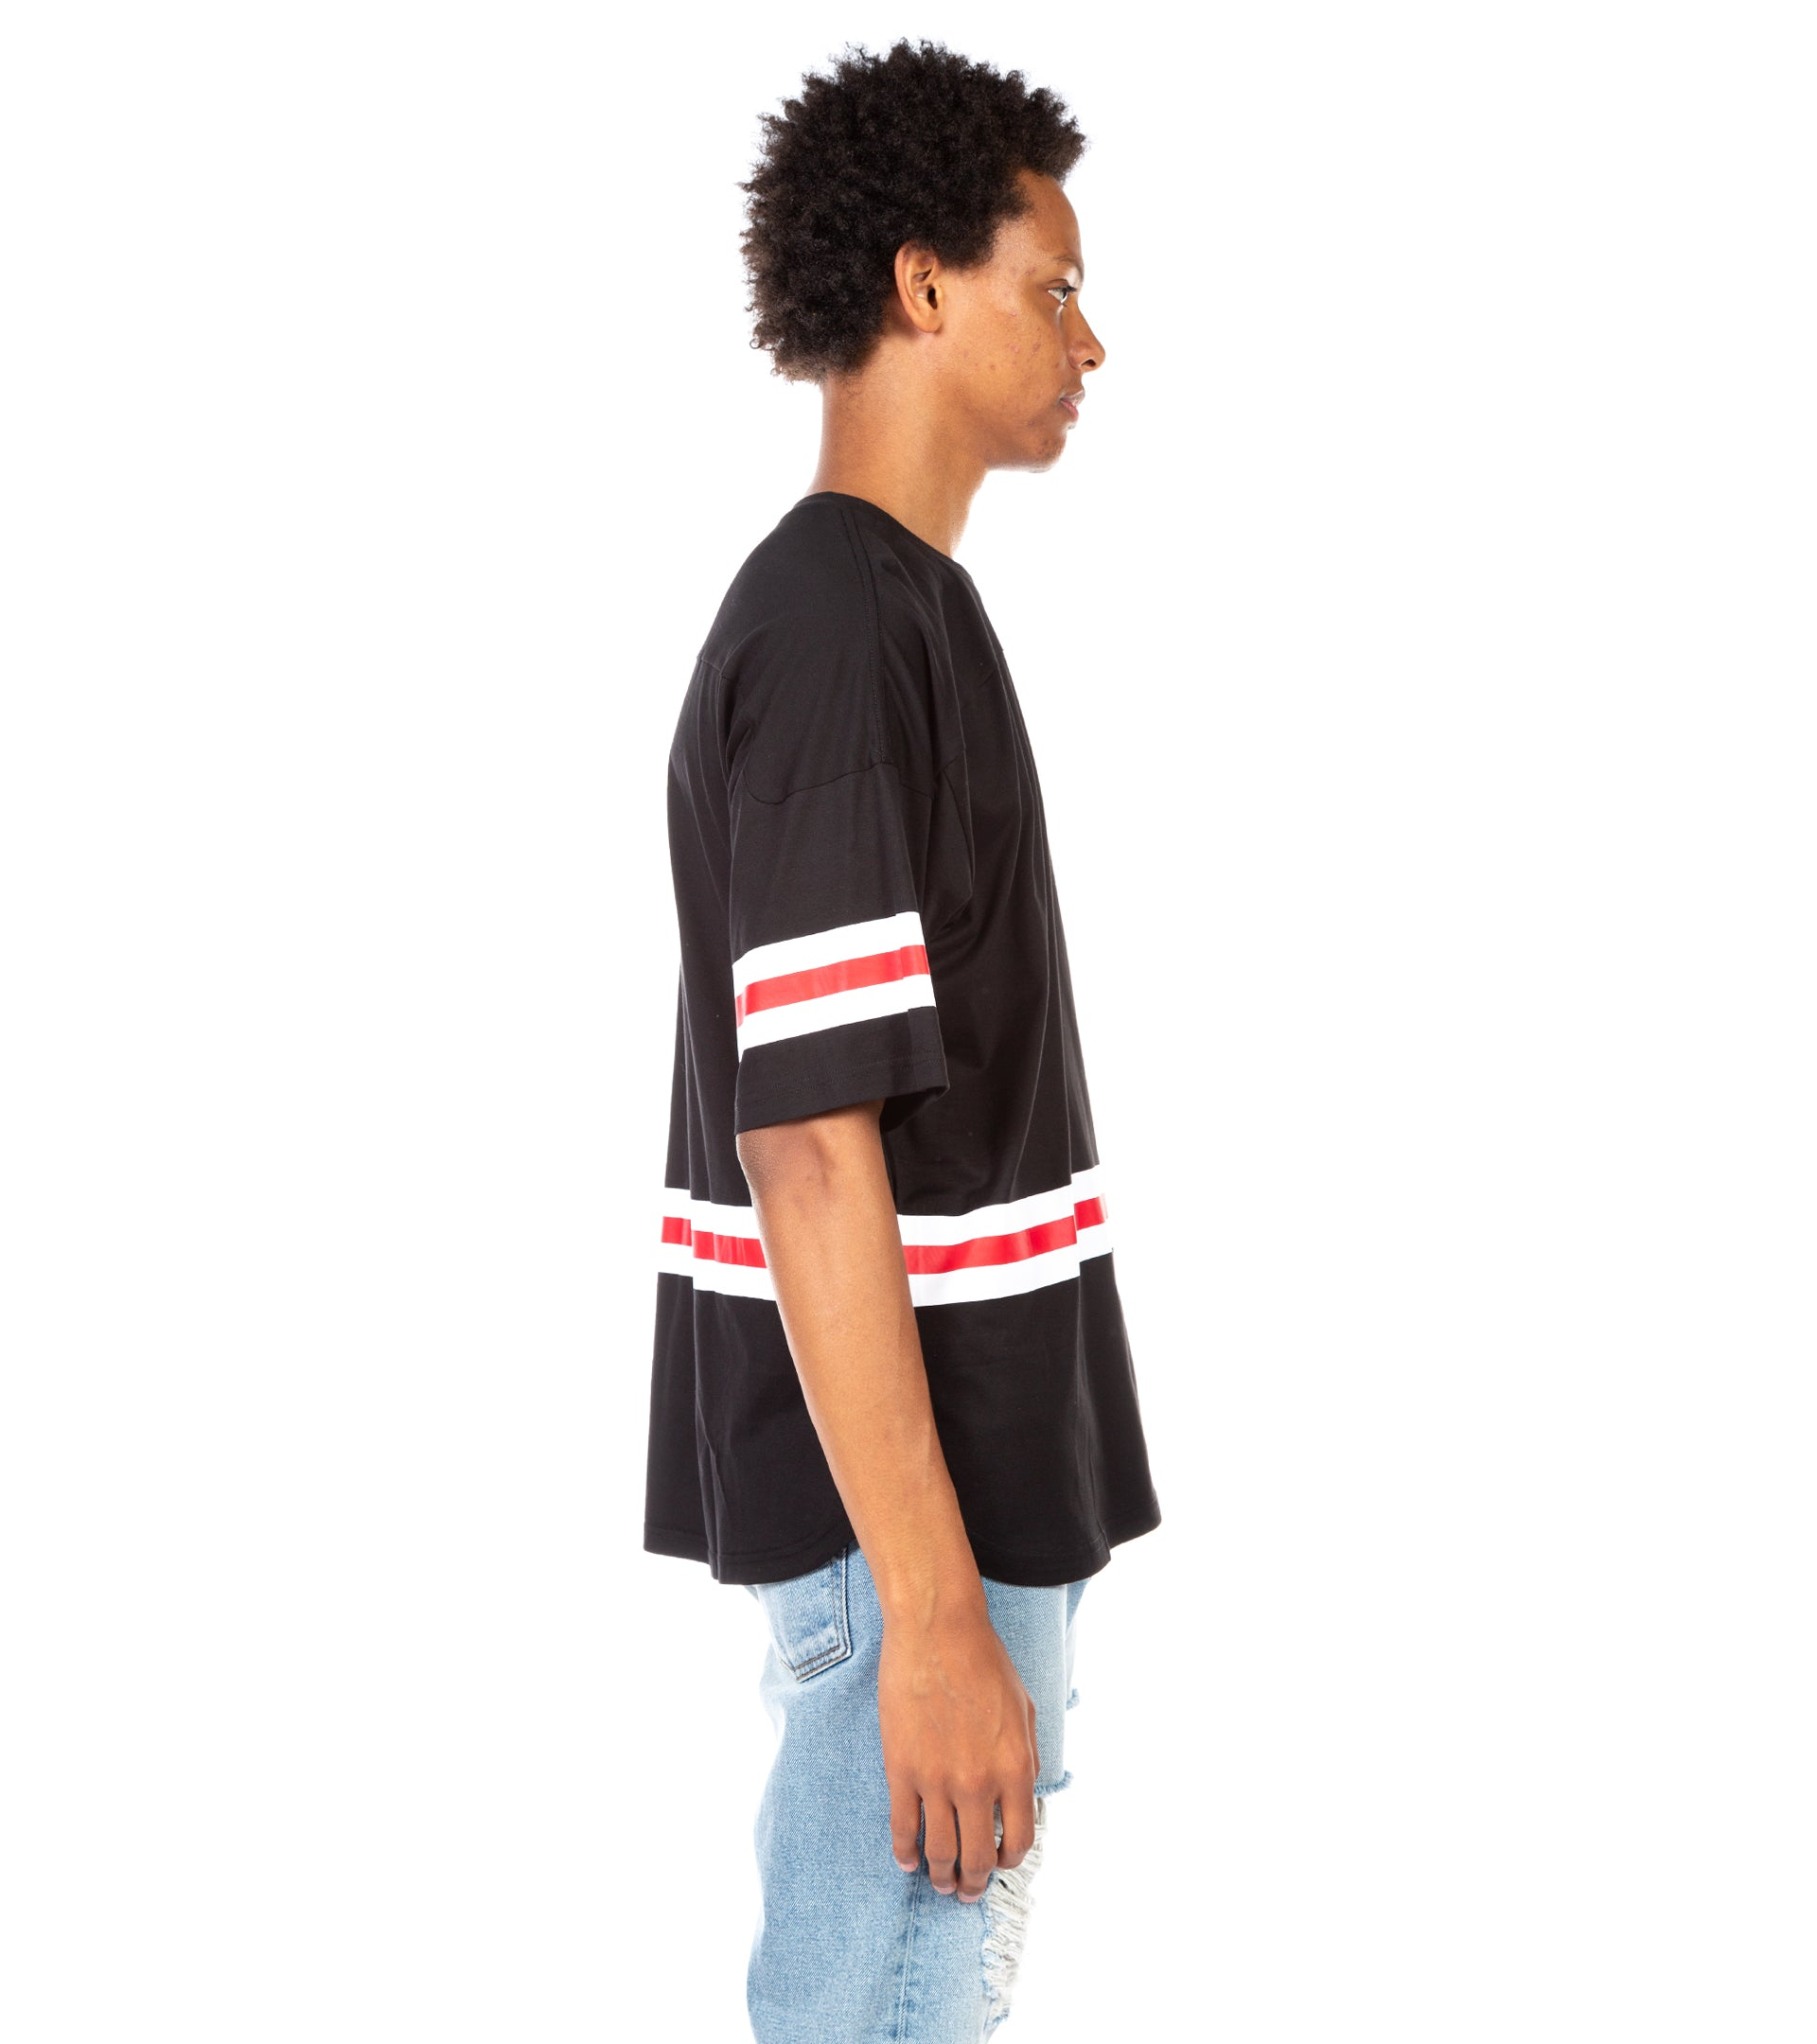 STAMPD - HOCKEY SHORT SLEEVE JERSEY